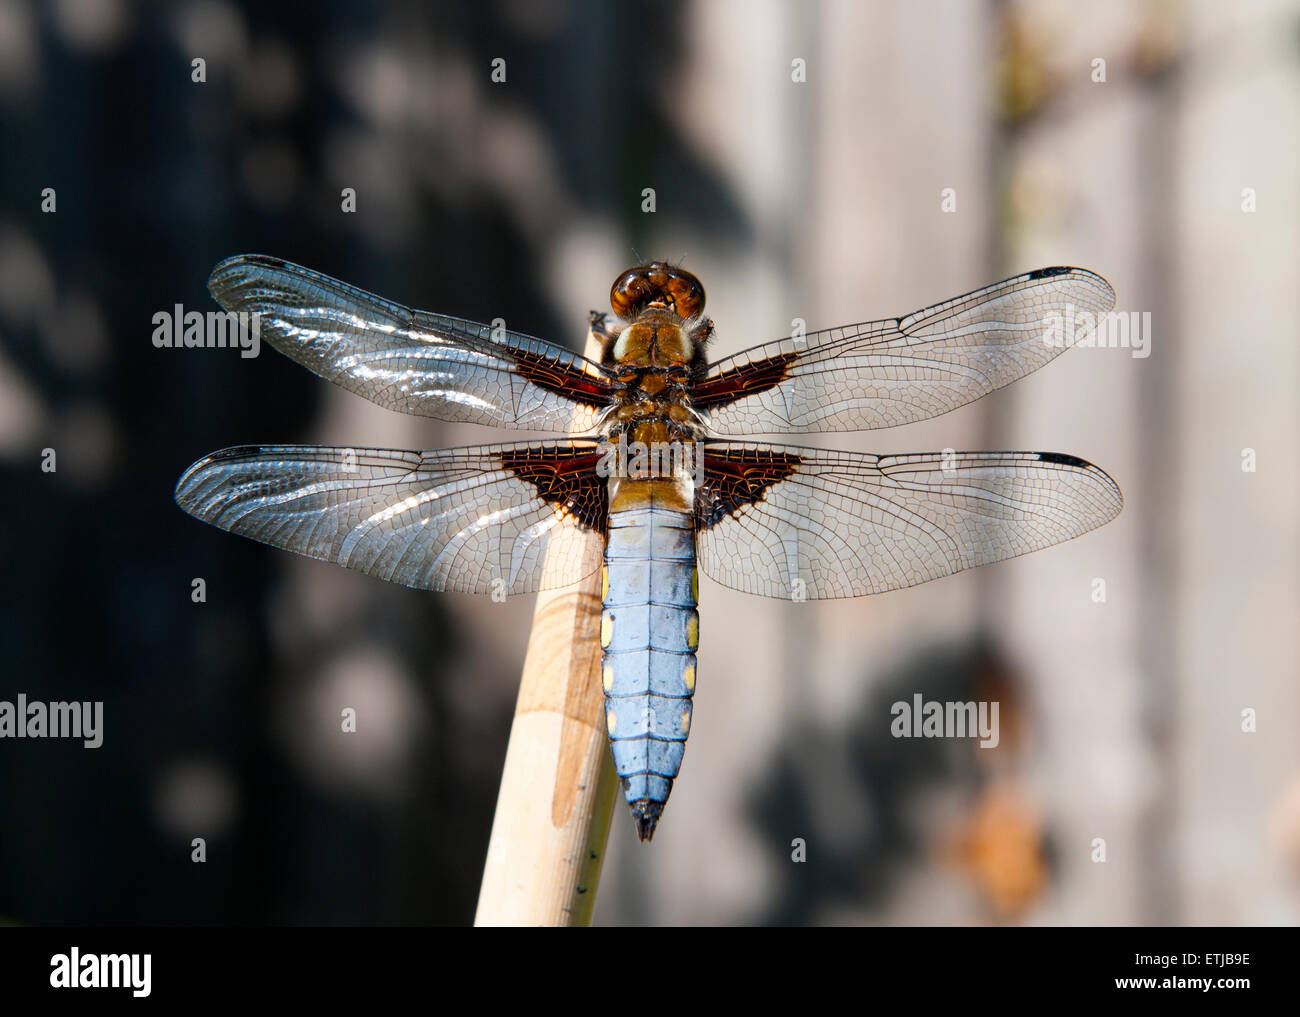 British dragonfly, the Broad-Bodied Chaser, Libellula depressa - Stock Image